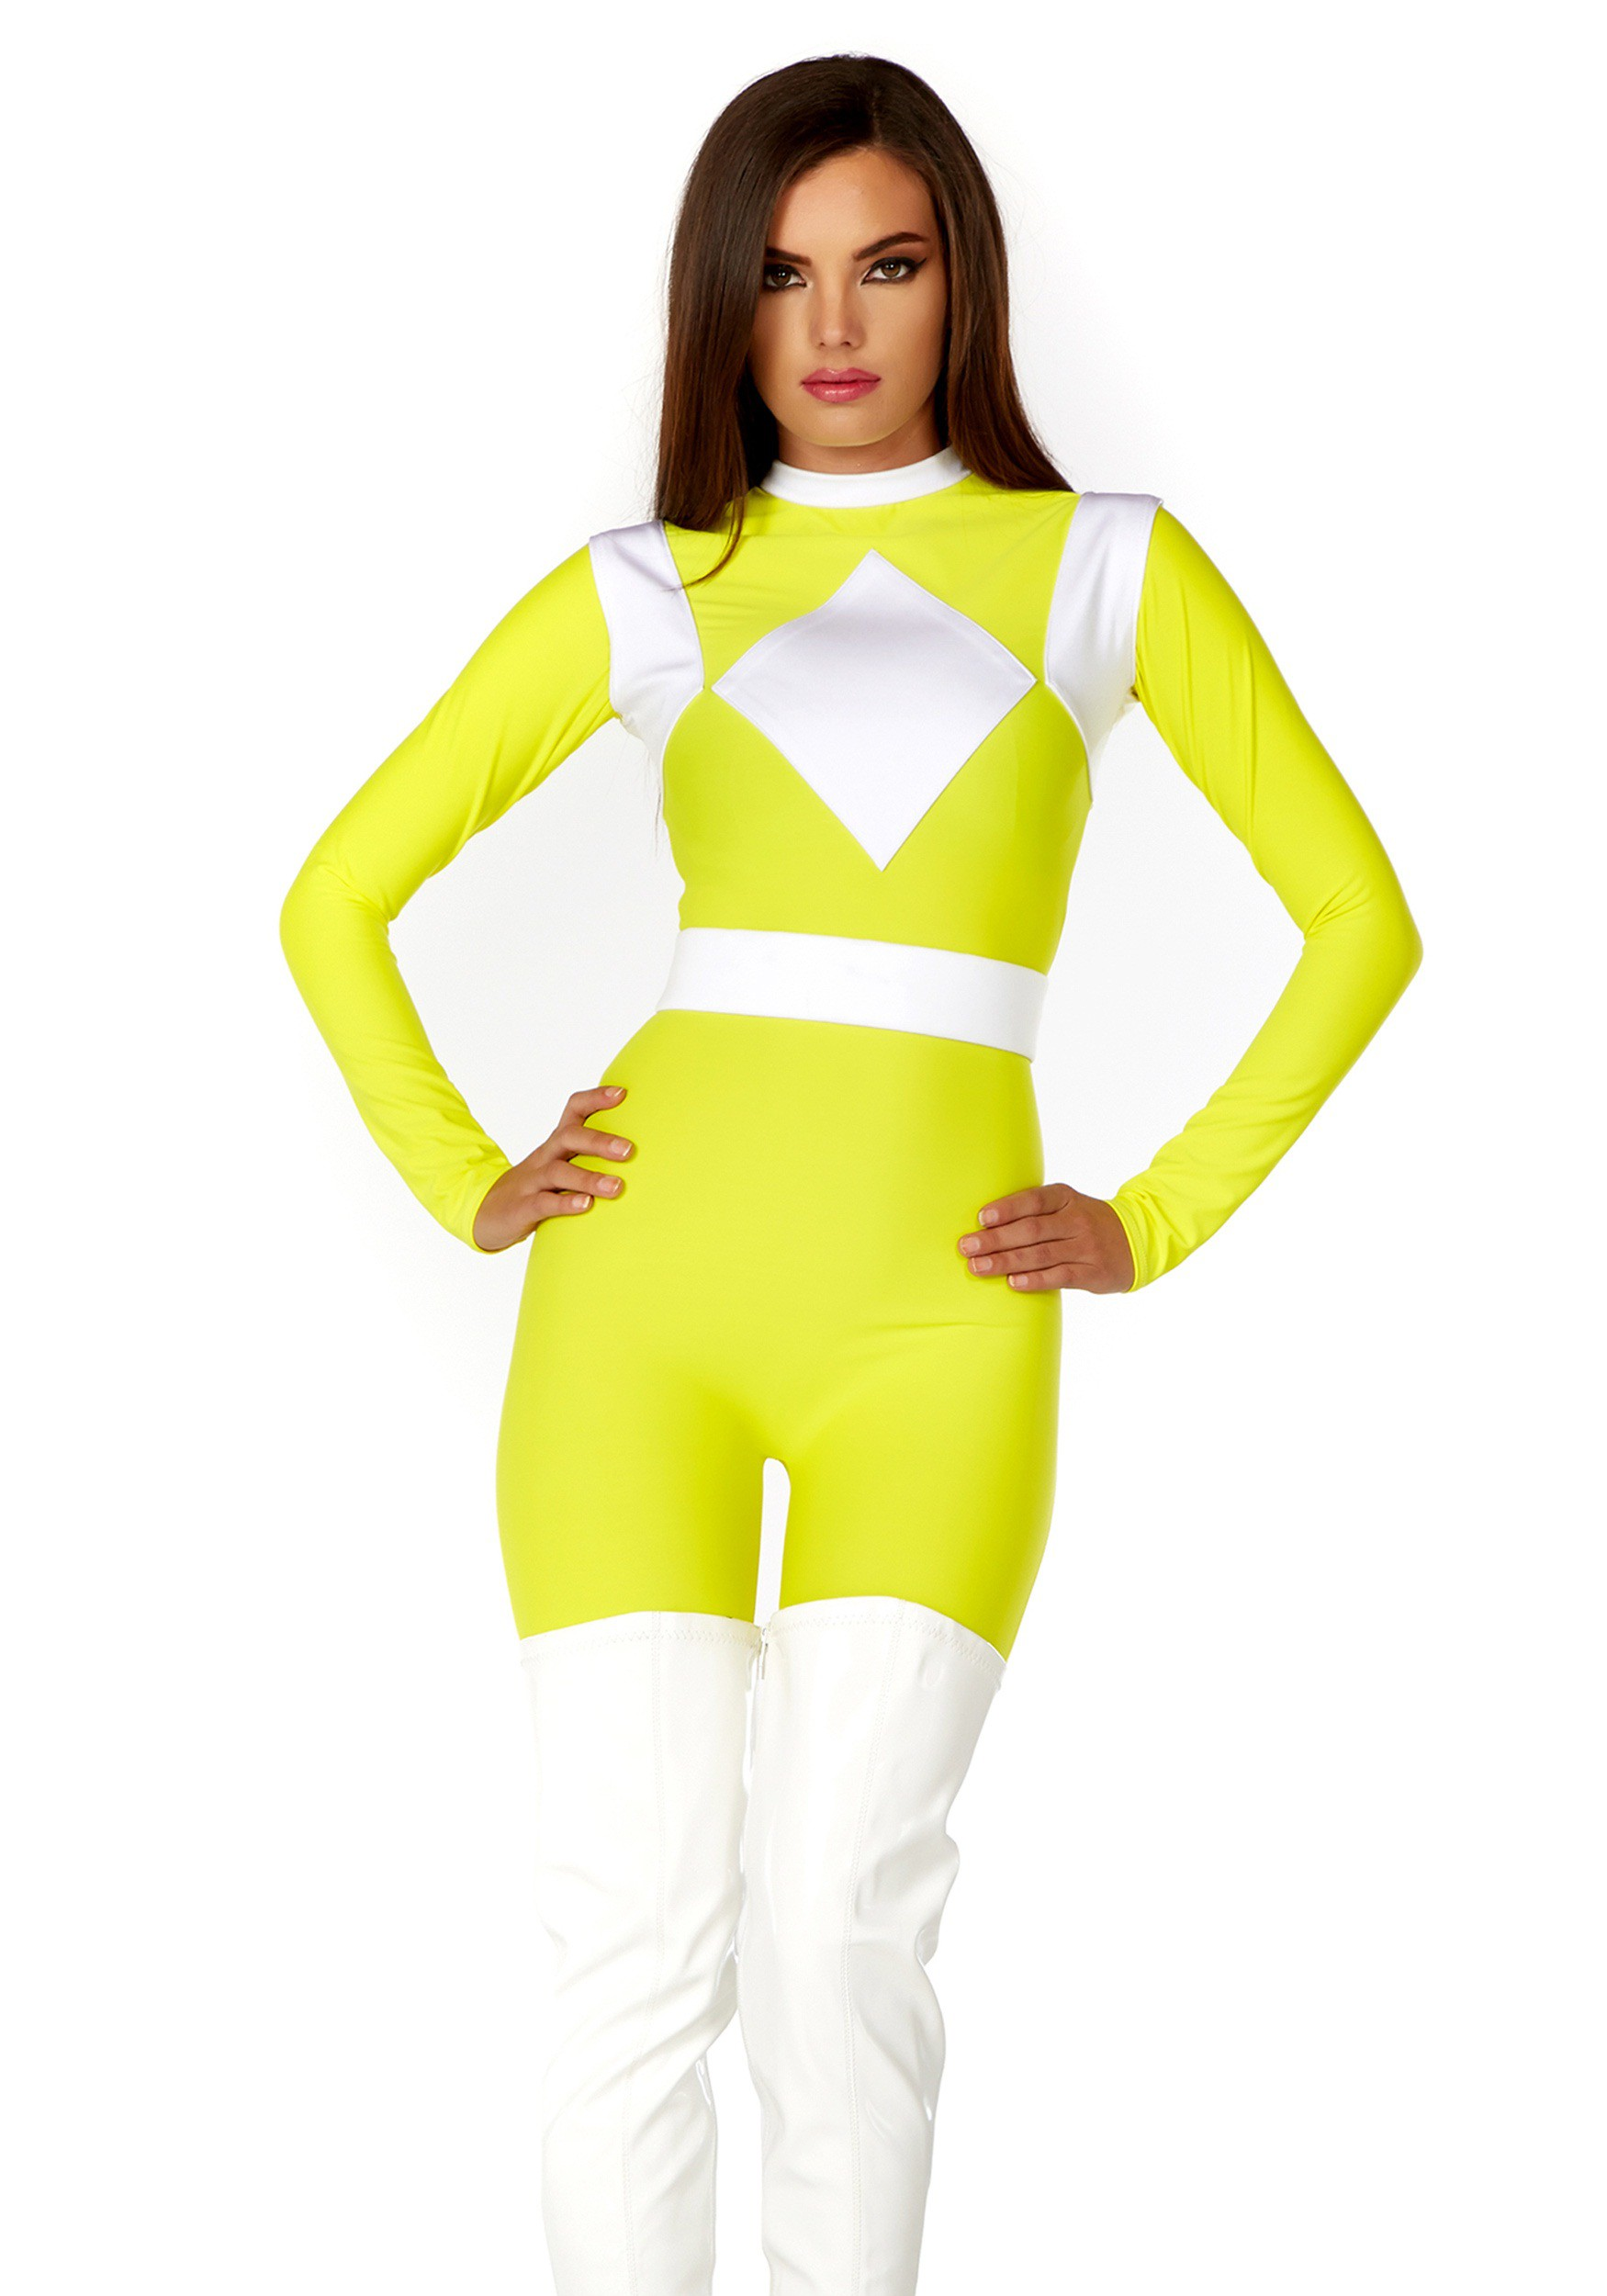 Women Dominance Action Figure Yellow Catsuit